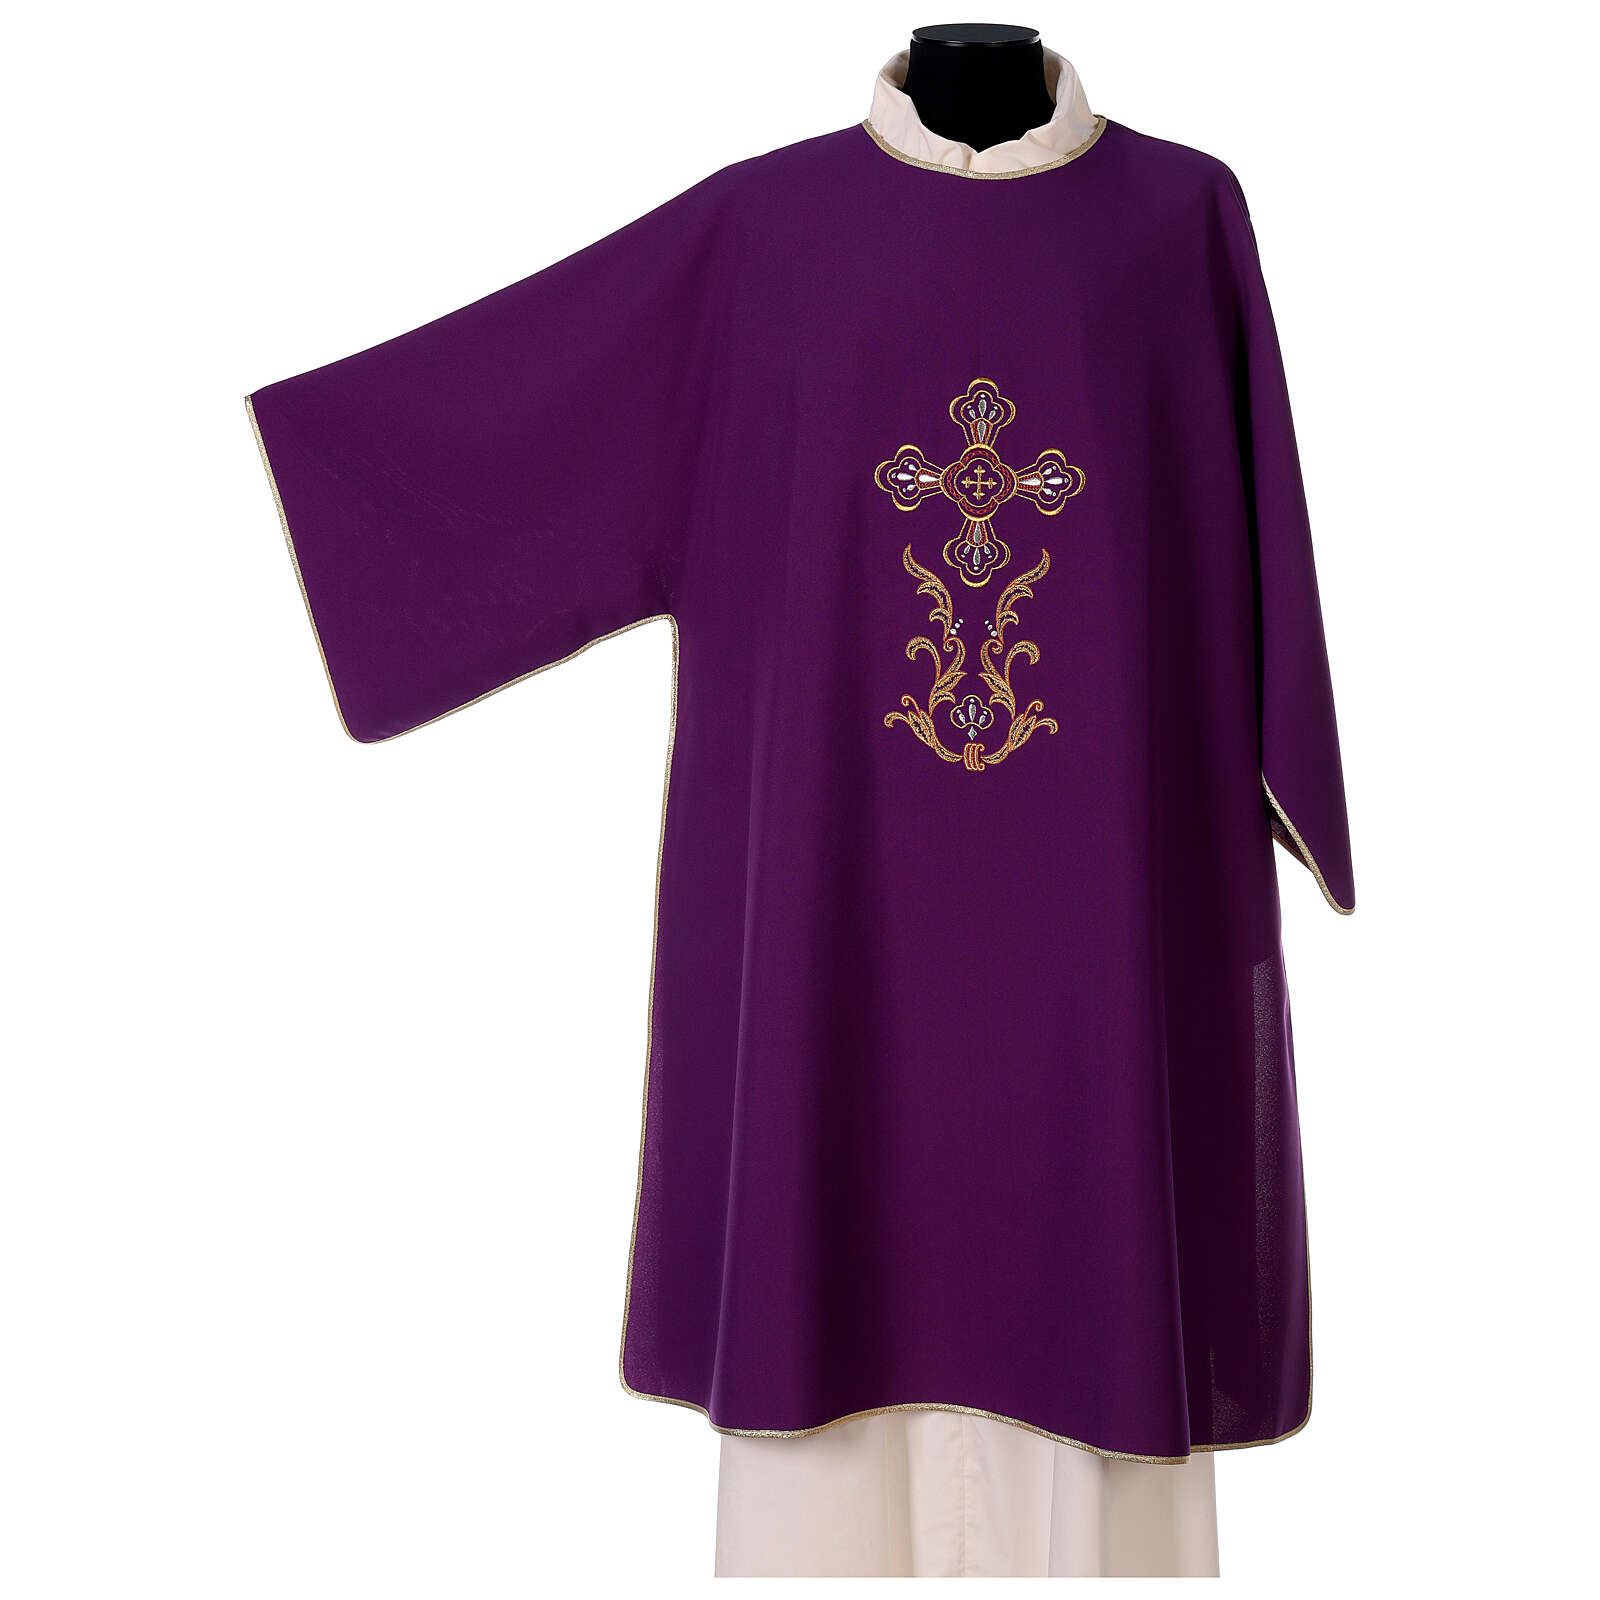 Dalmatic with cross embroidery 100% polyester 4